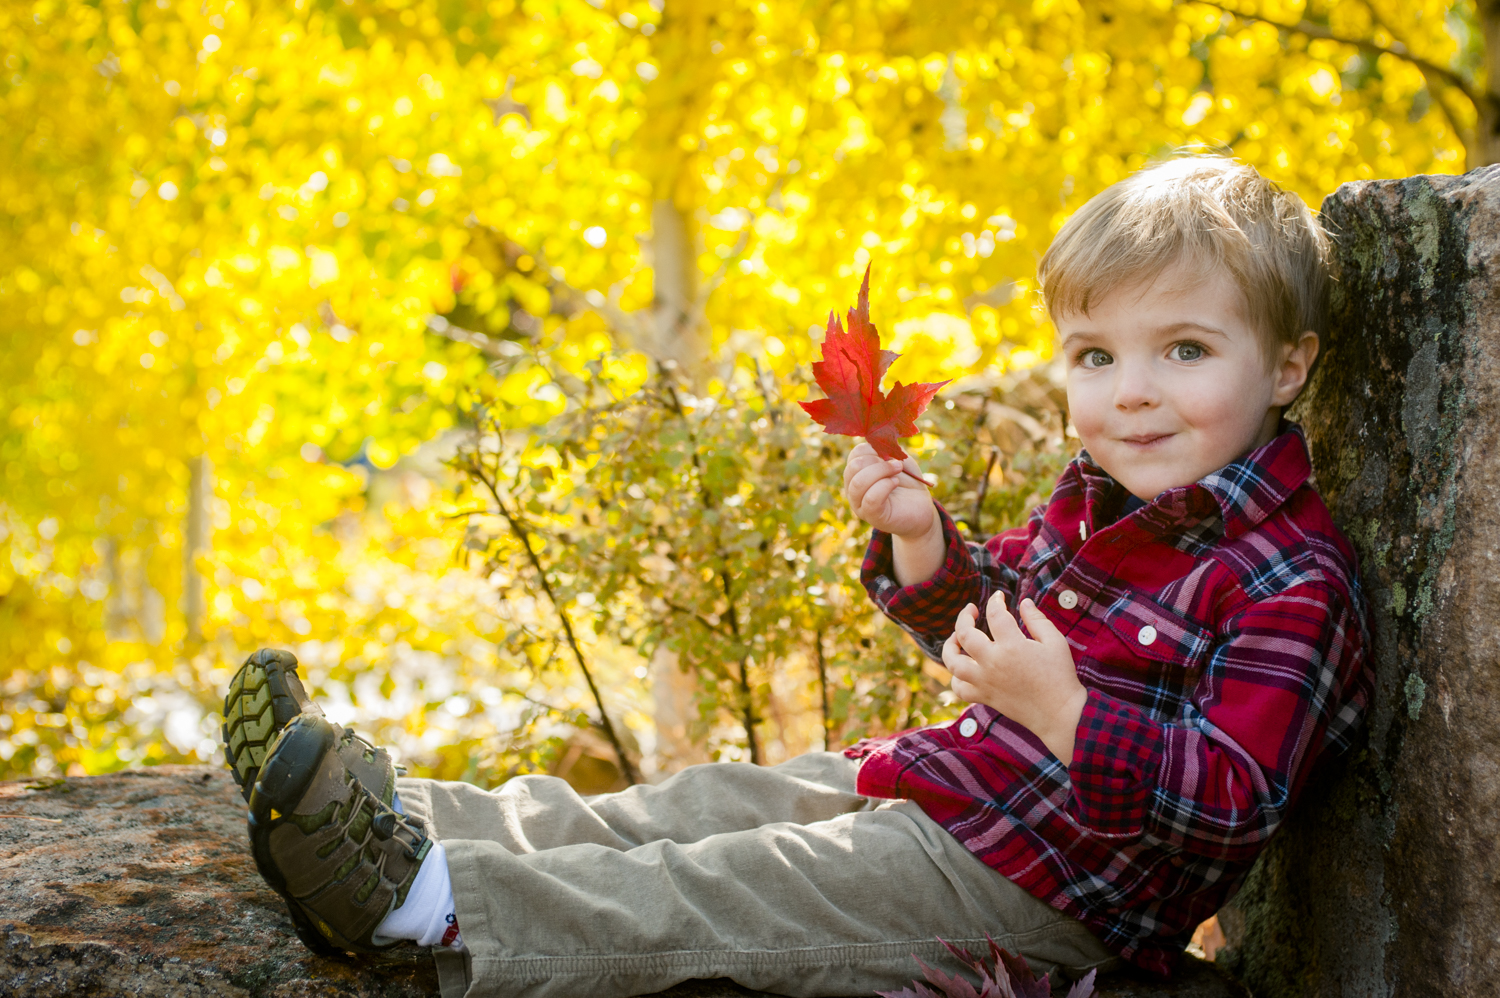 fall_lifestyle_family_leaves_candid_playing-021.jpg